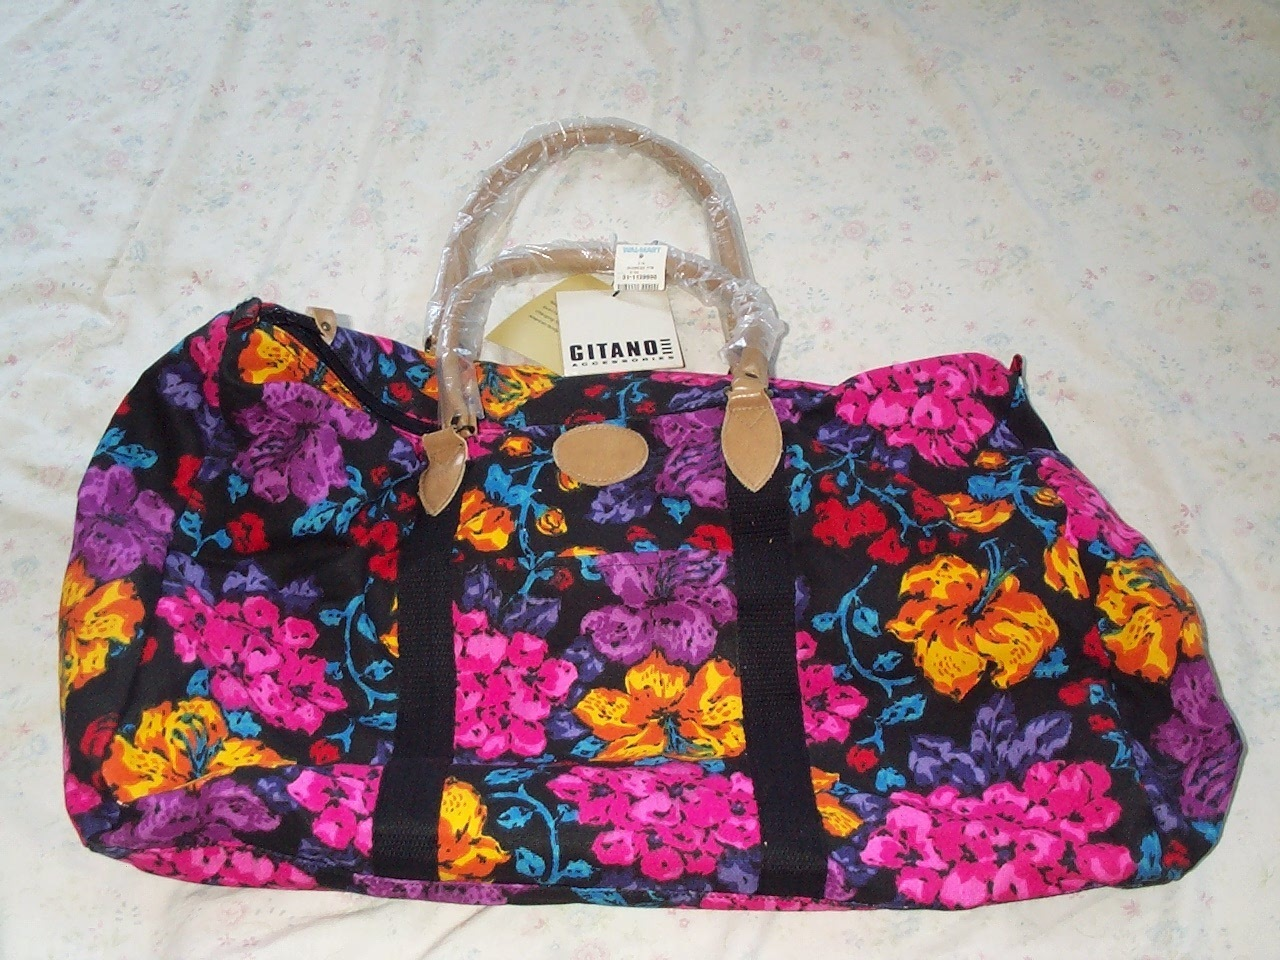 Gitano Oversize Duffle Tote New with Tags